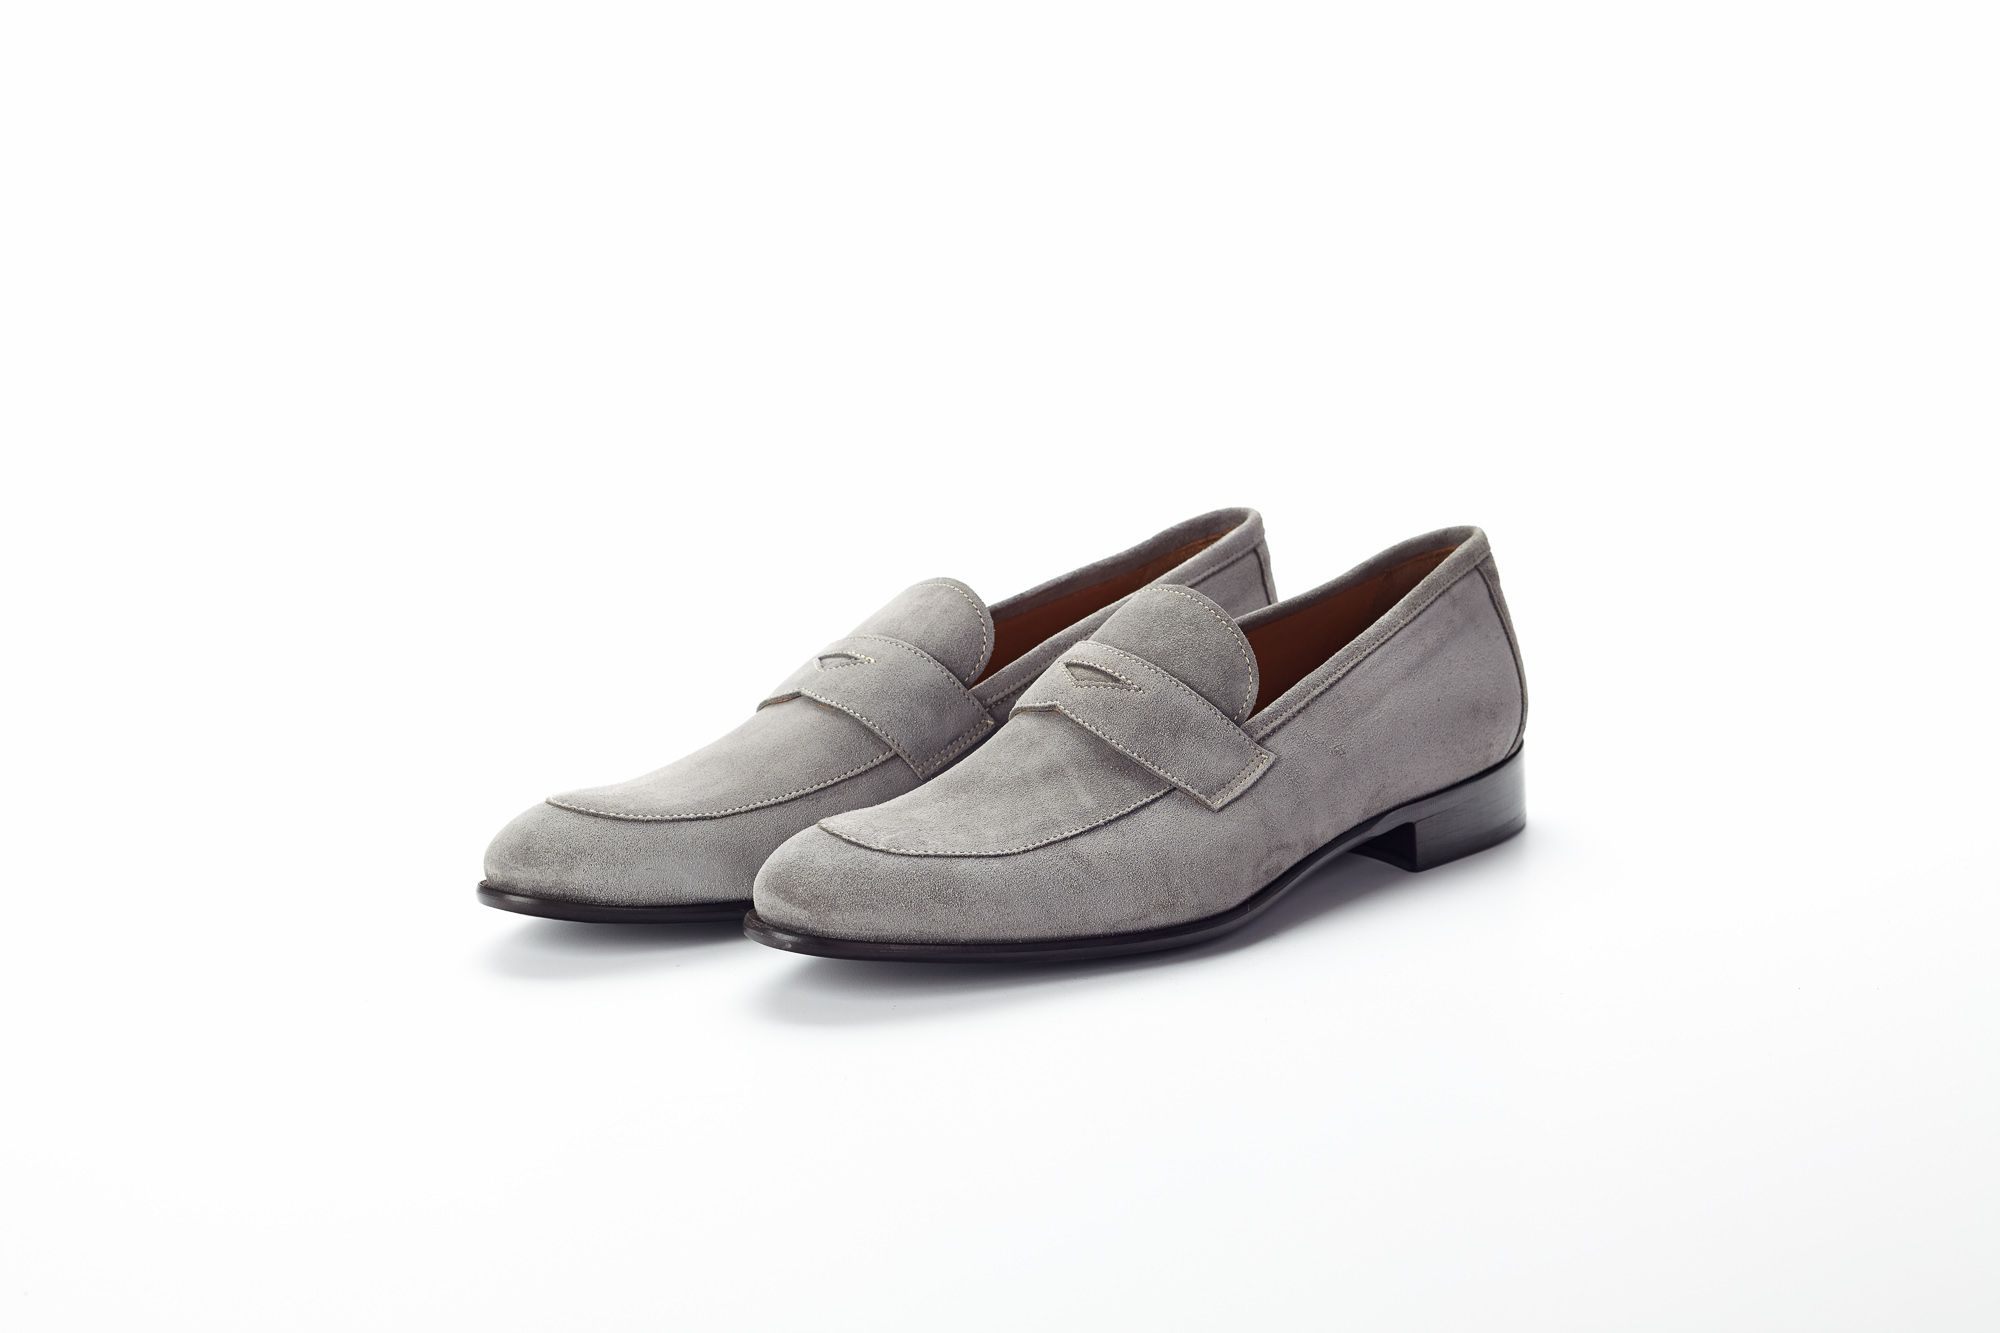 e38370b55f1 The Stewart in grey suede by Paul Evans www.paulevansny.com  dressshoes   mensshoes  mensfashion  shoes  swag  style  shoegame  boyfriend  guygifts   forhim ...